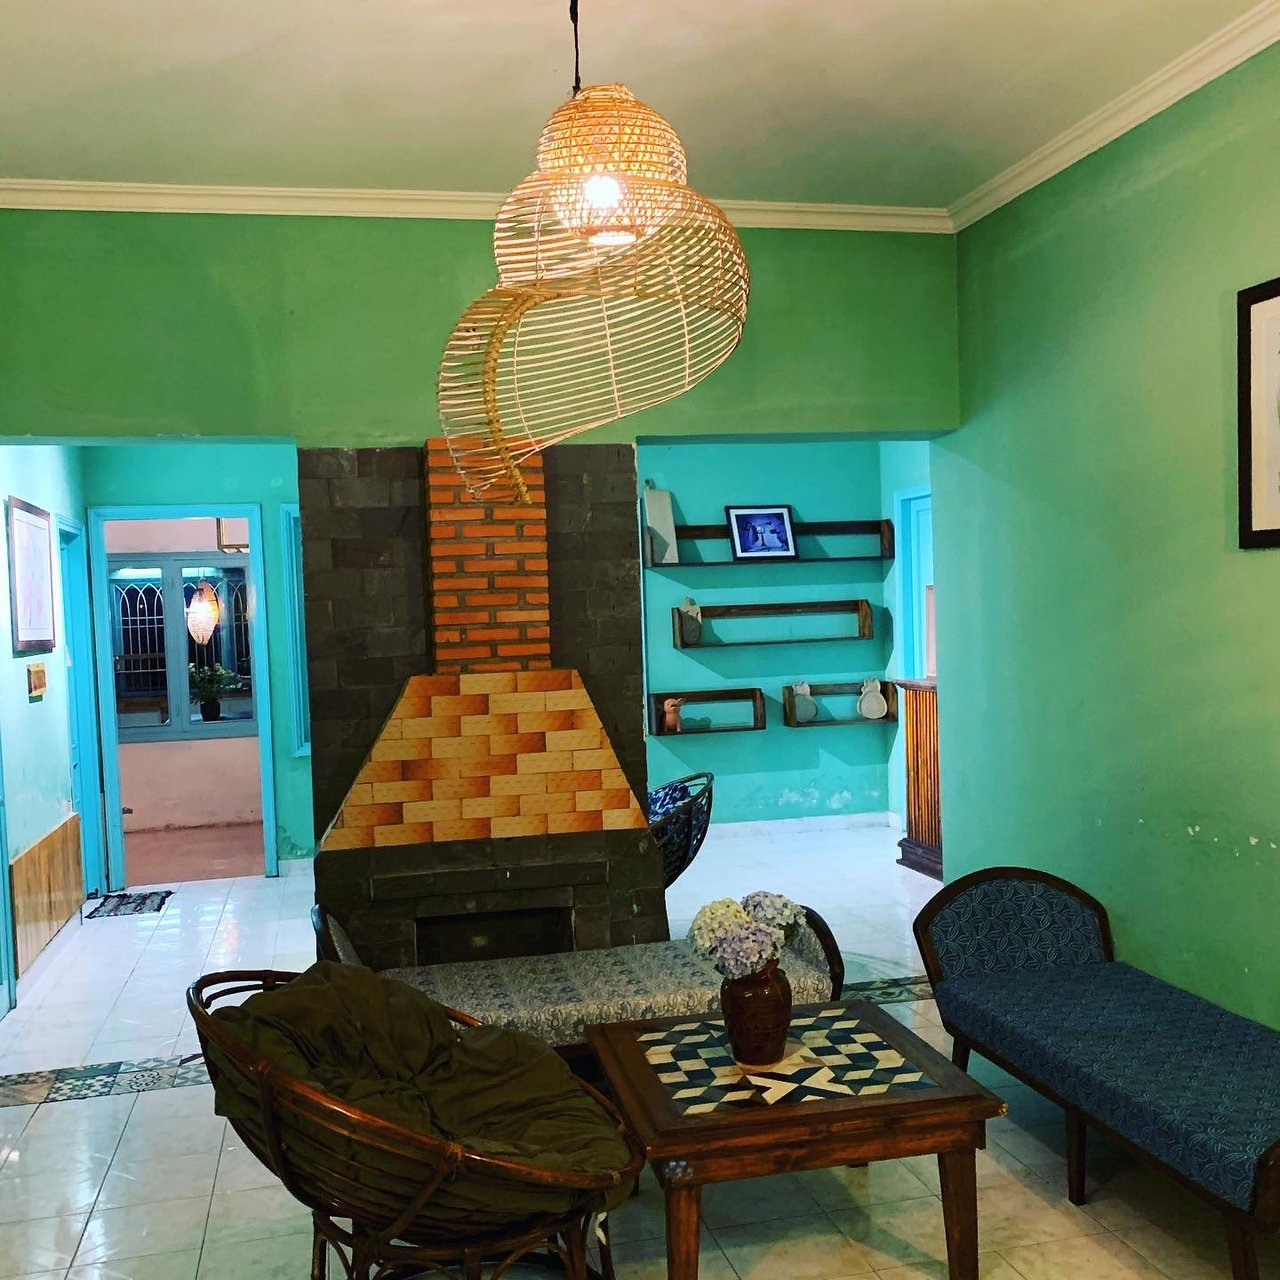 Home Of Dreamers Hostel Reviews Da Lat Vietnam Tripadvisor